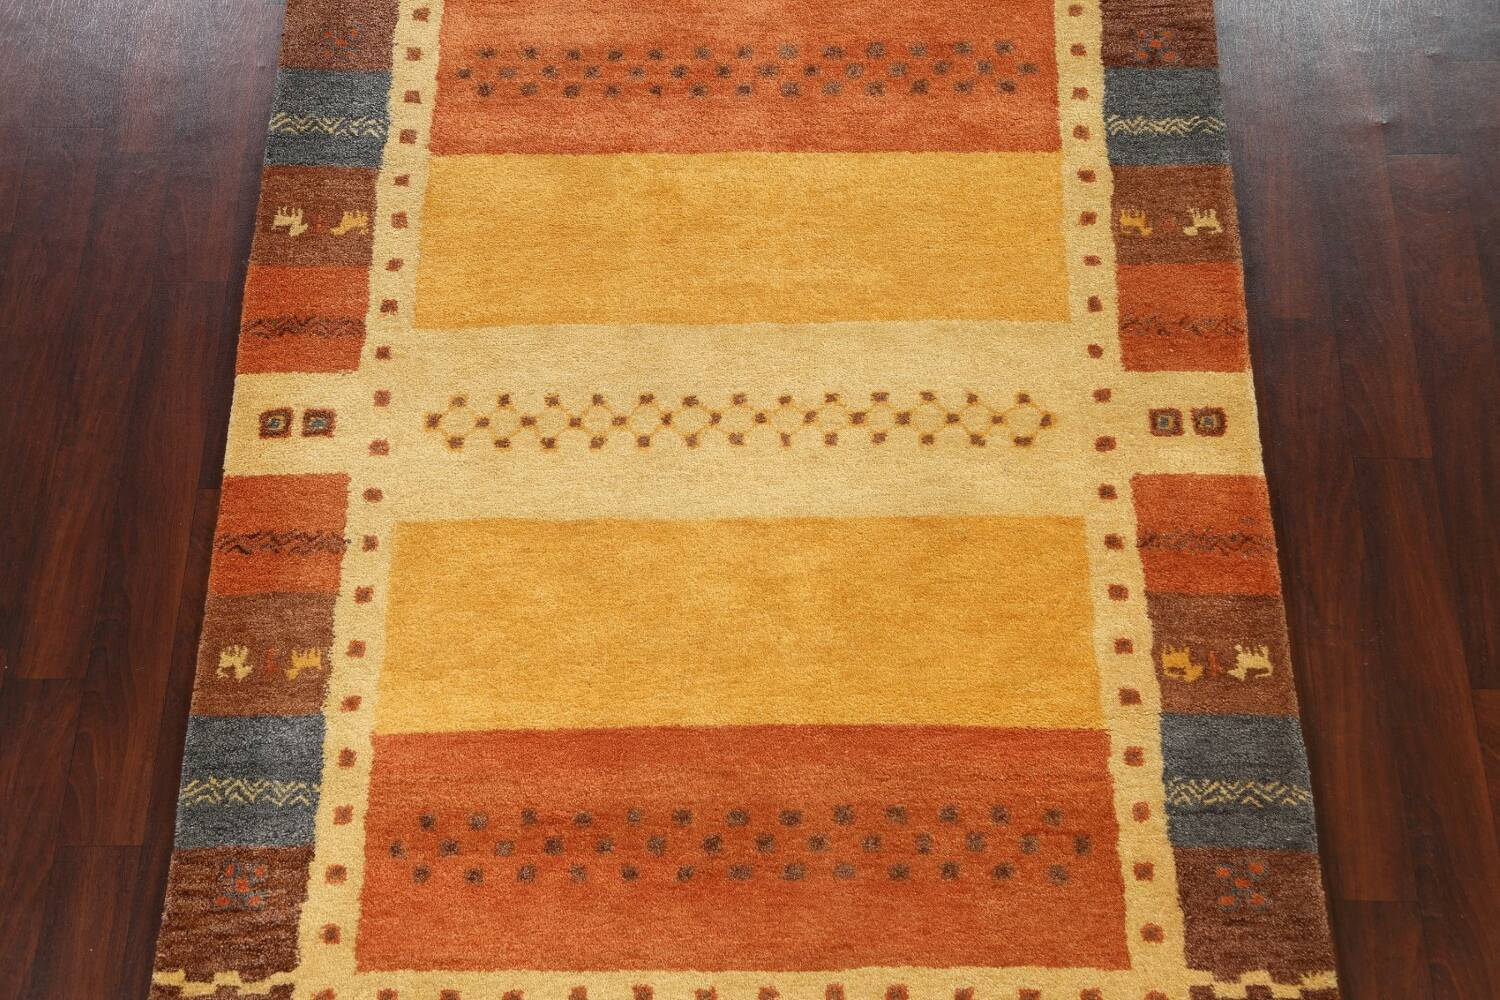 Hand-Tufted Tribal Gabbeh Area Rug 6x8 image 3